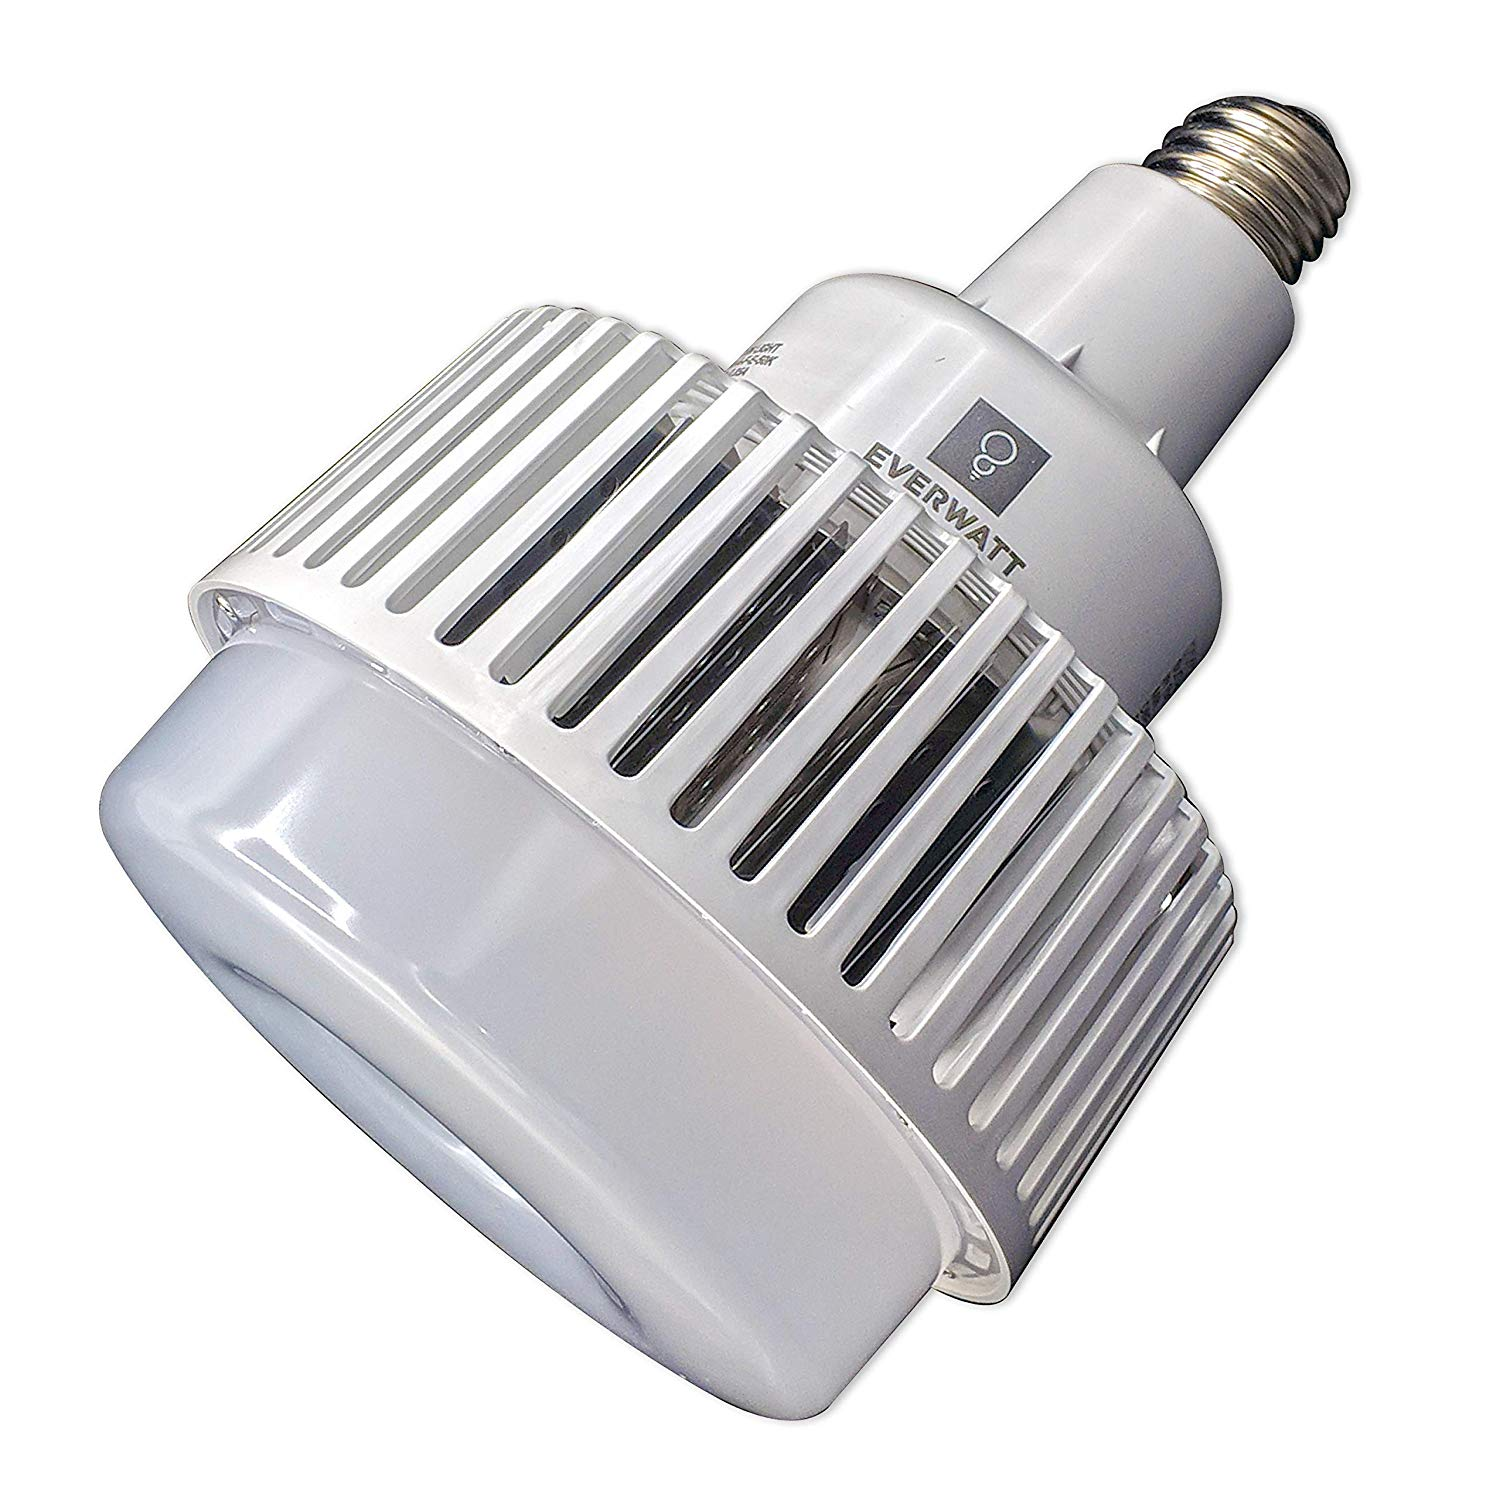 100w led high bay bulb e39 mogul replacement for 400w 600w metal halide equivalent 5000k 13000 lumens for daylight shop lamp for warehouses